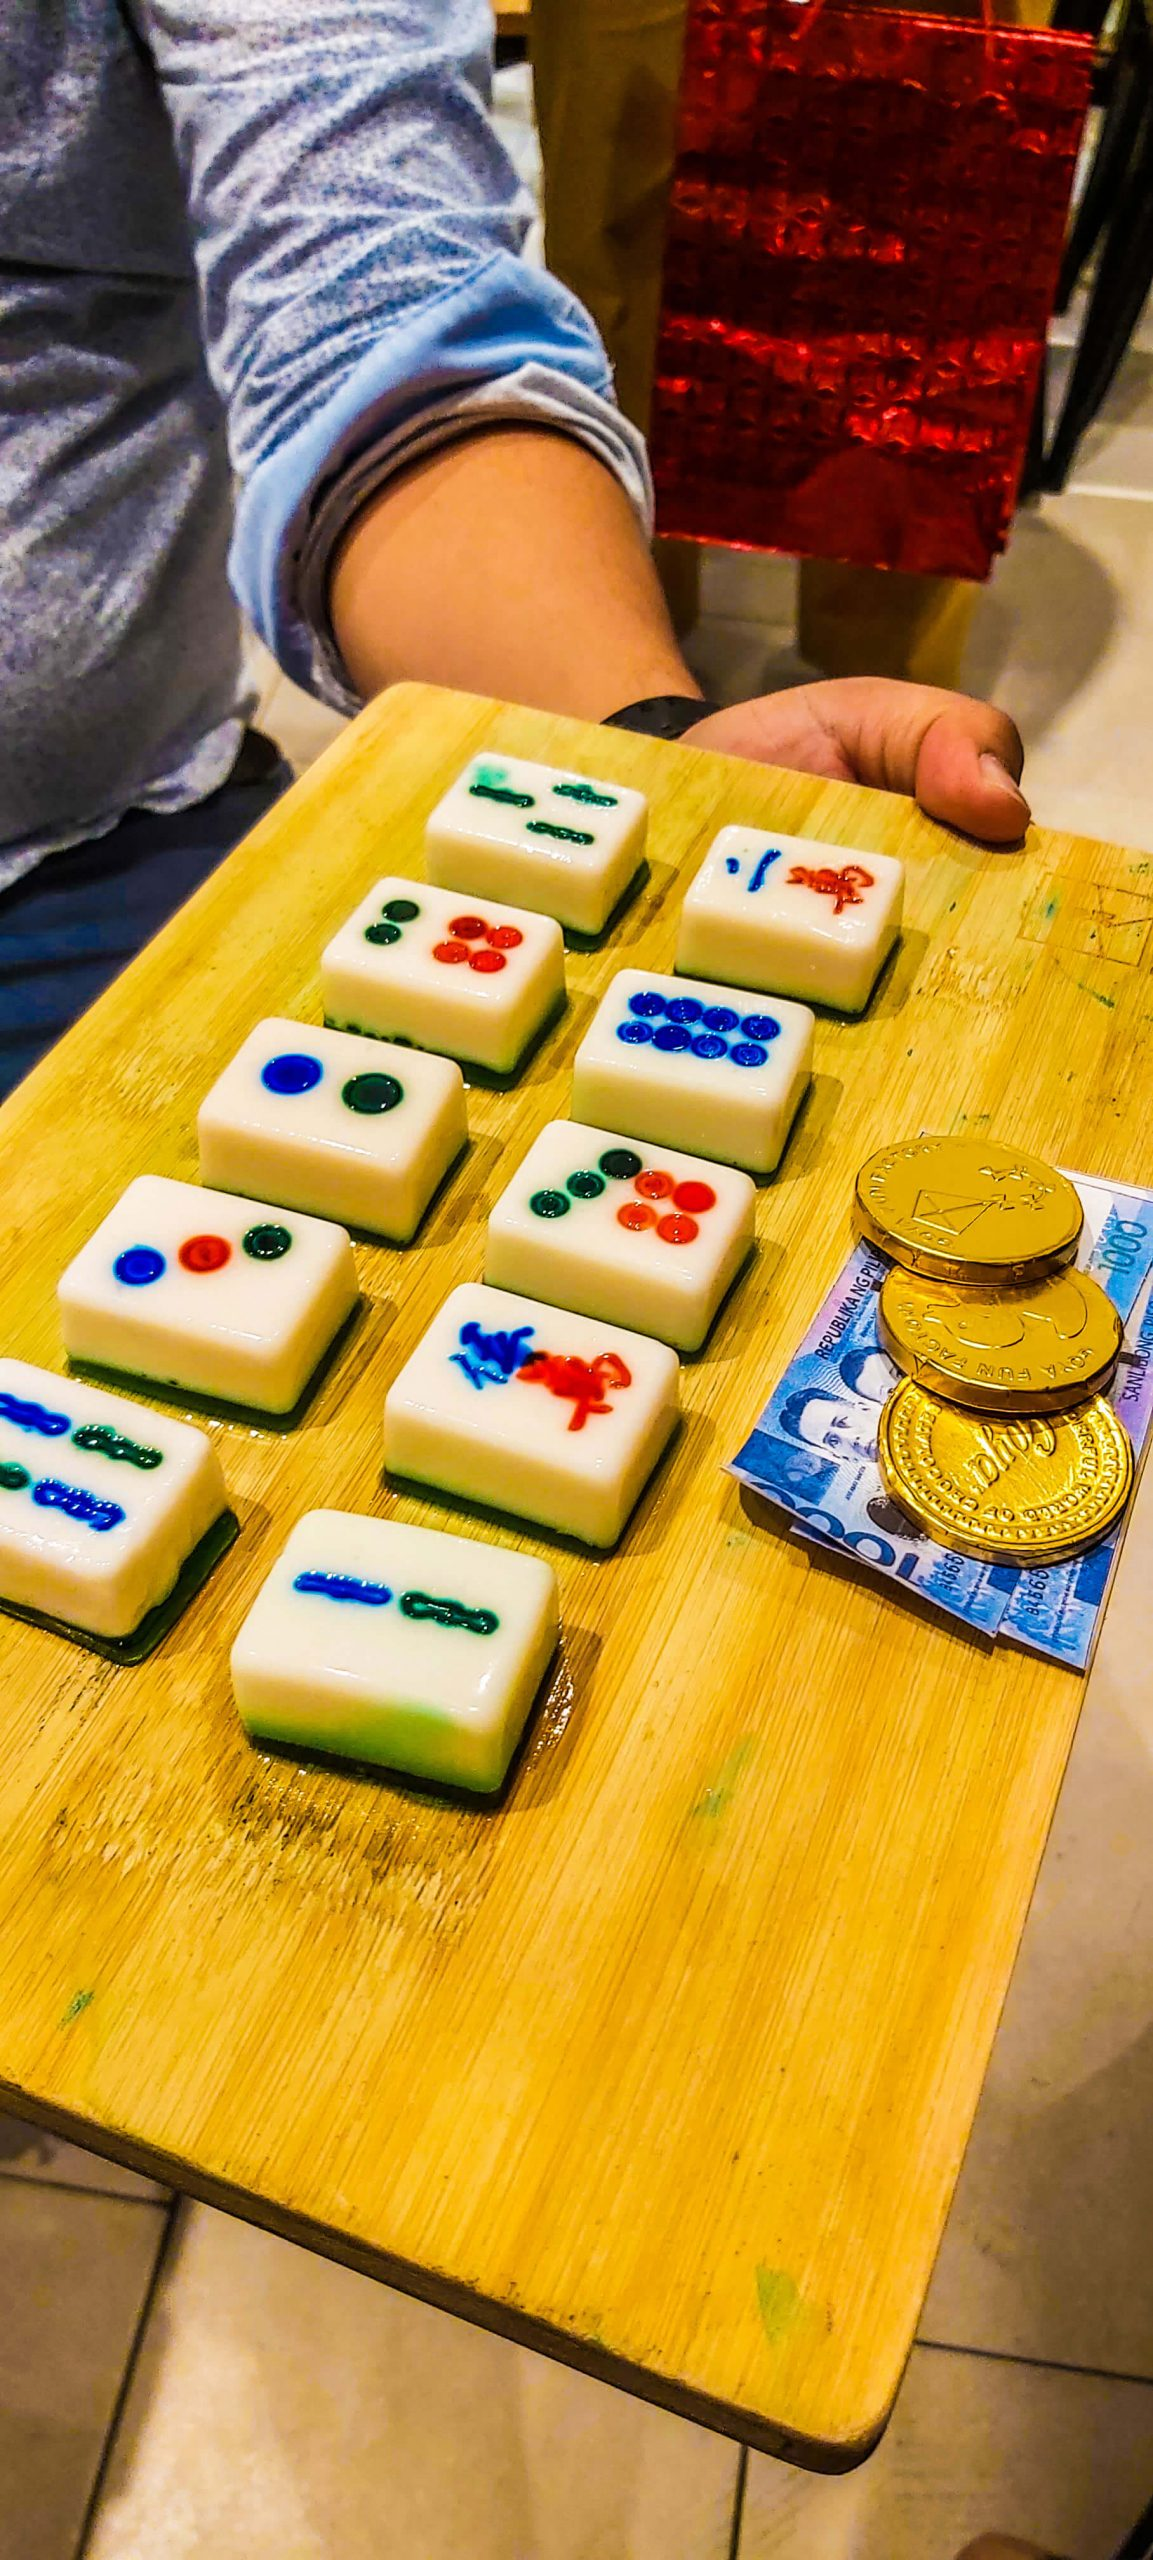 DESSERT. These mahjong tiles are actually sweet treats.